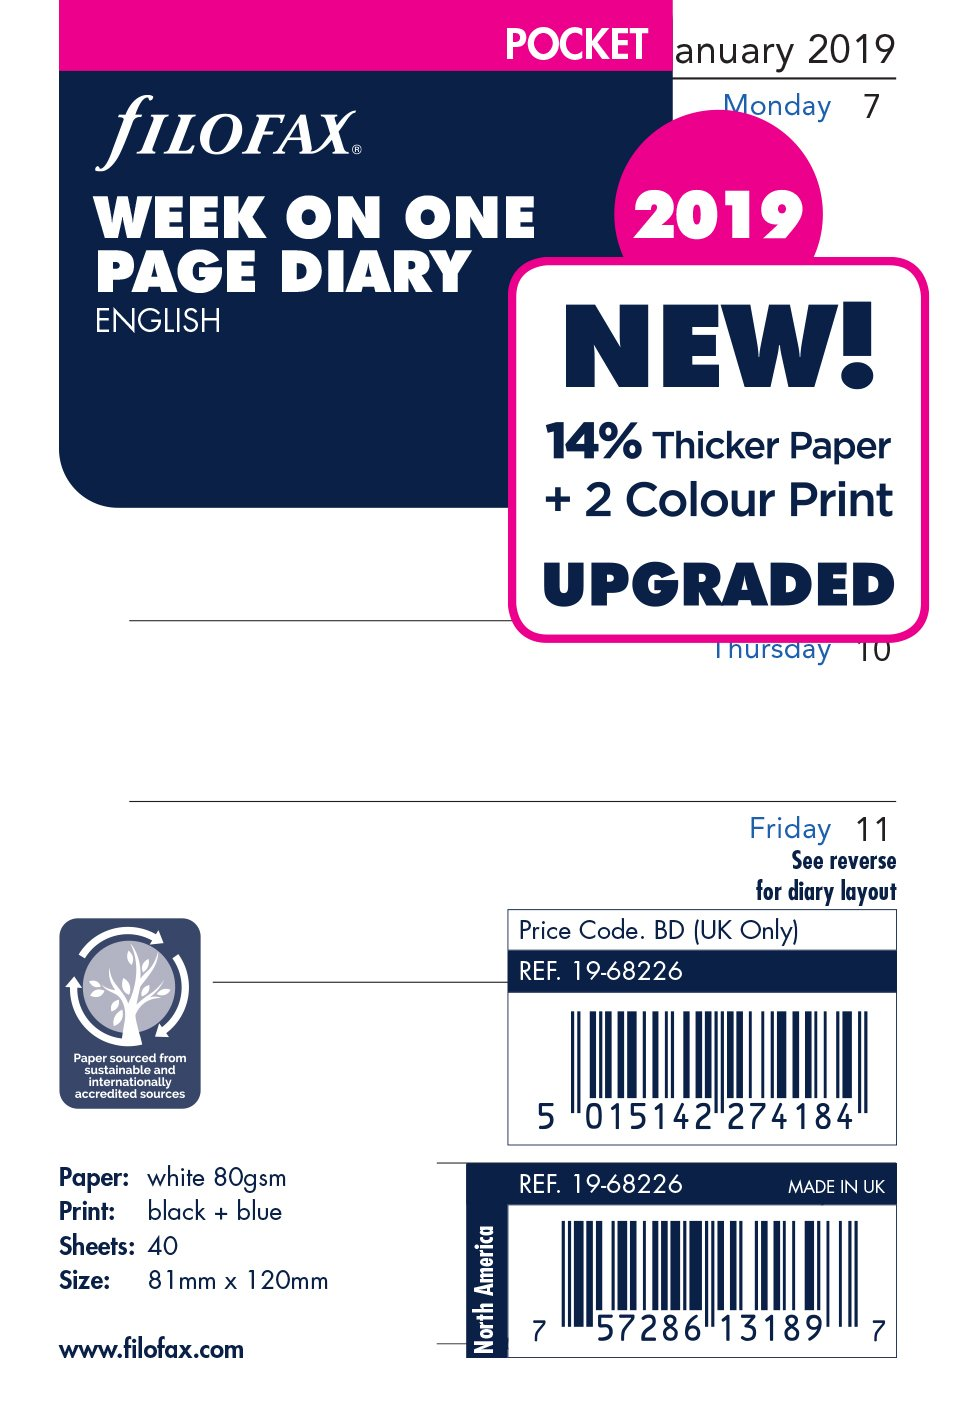 Filofax 19-68226 Pocket Week Per Page 2019 Diary